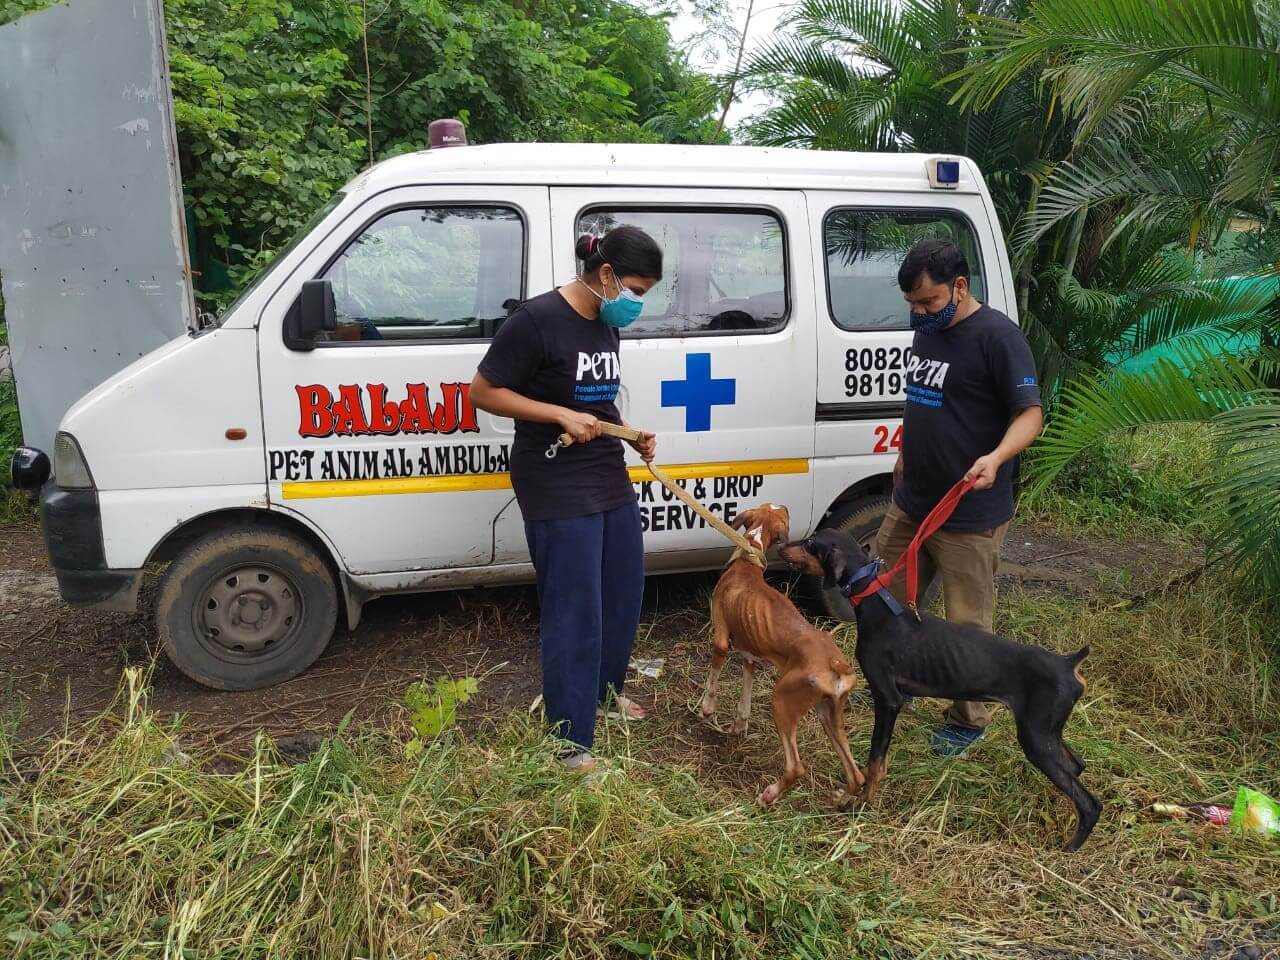 PETA India loads the dogs into an ambulance that will take them to Animal Rahat's sanctuary in Sangli.